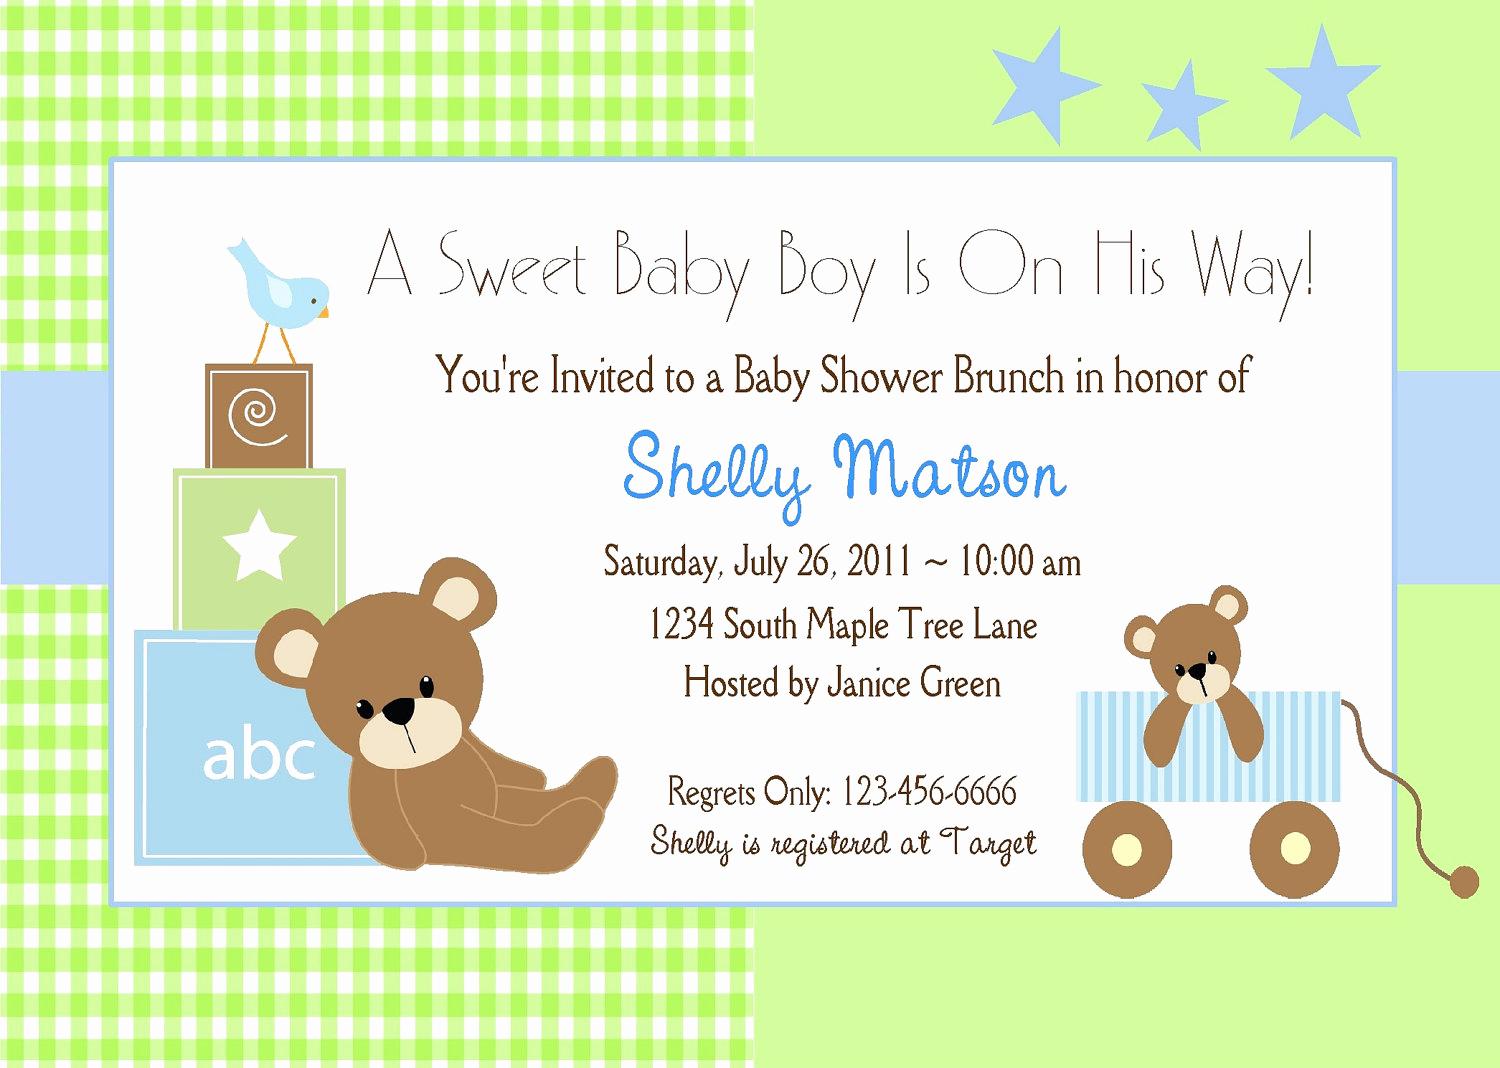 Baby Shower Invitation Examples Luxury Free Baby Boy Shower Invitations Templates Baby Boy